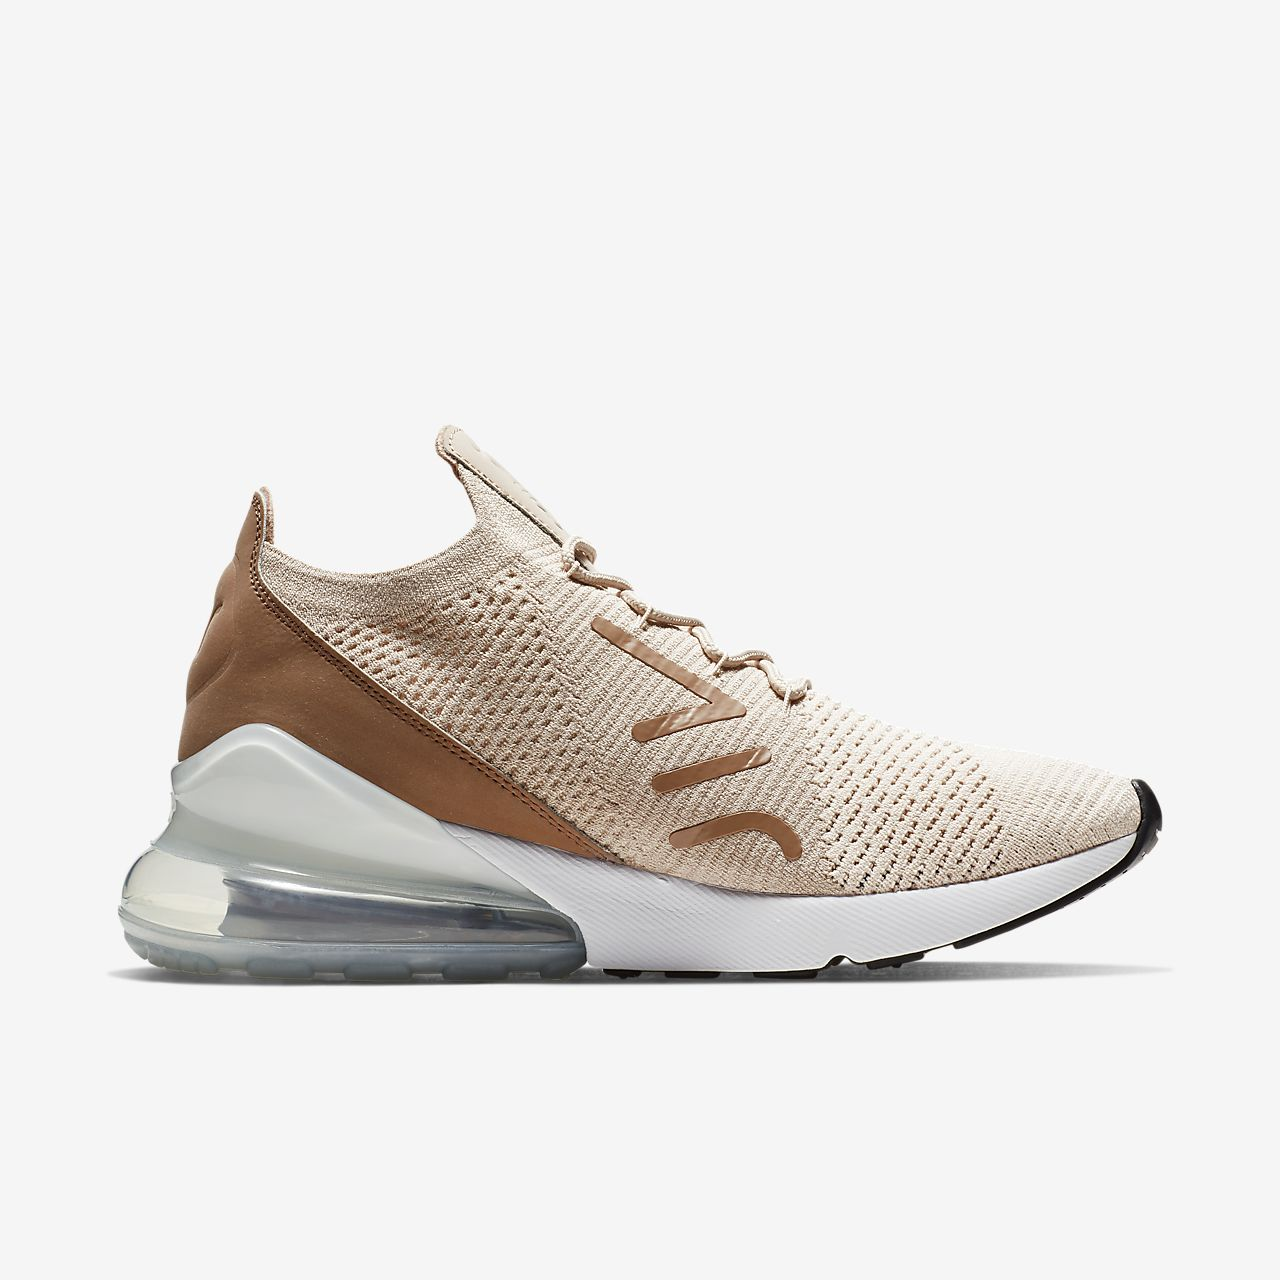 65Discounts Air Up Nike Oreogt; Force Buy To 270 j4A3Rqc5L